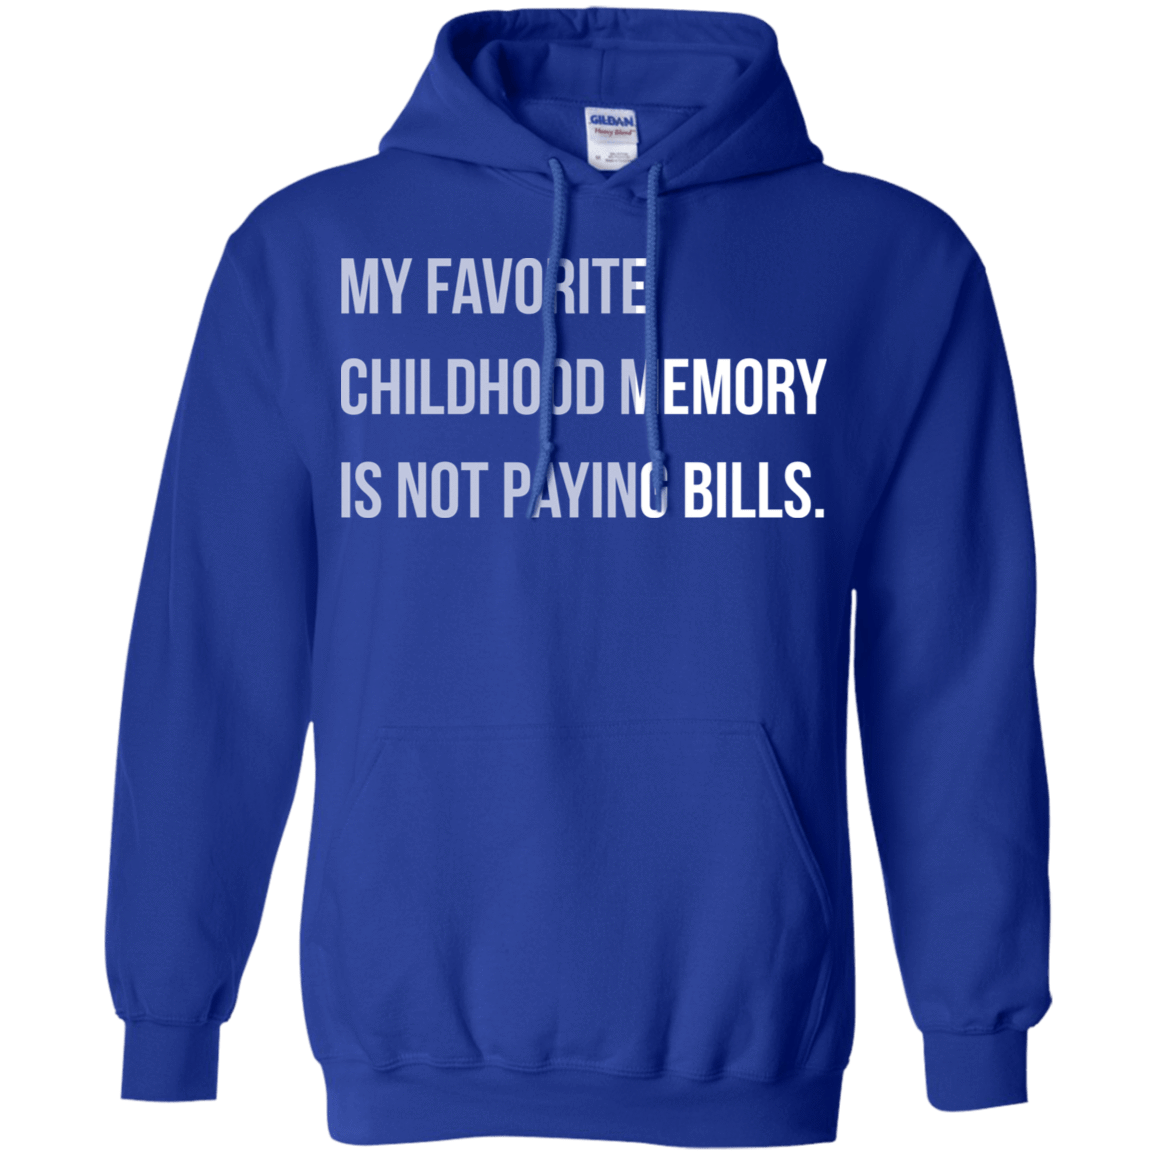 My Favorite Childhood Memory Is Not Paying Bills 541-4765-73421365-23175 - Tee Ript